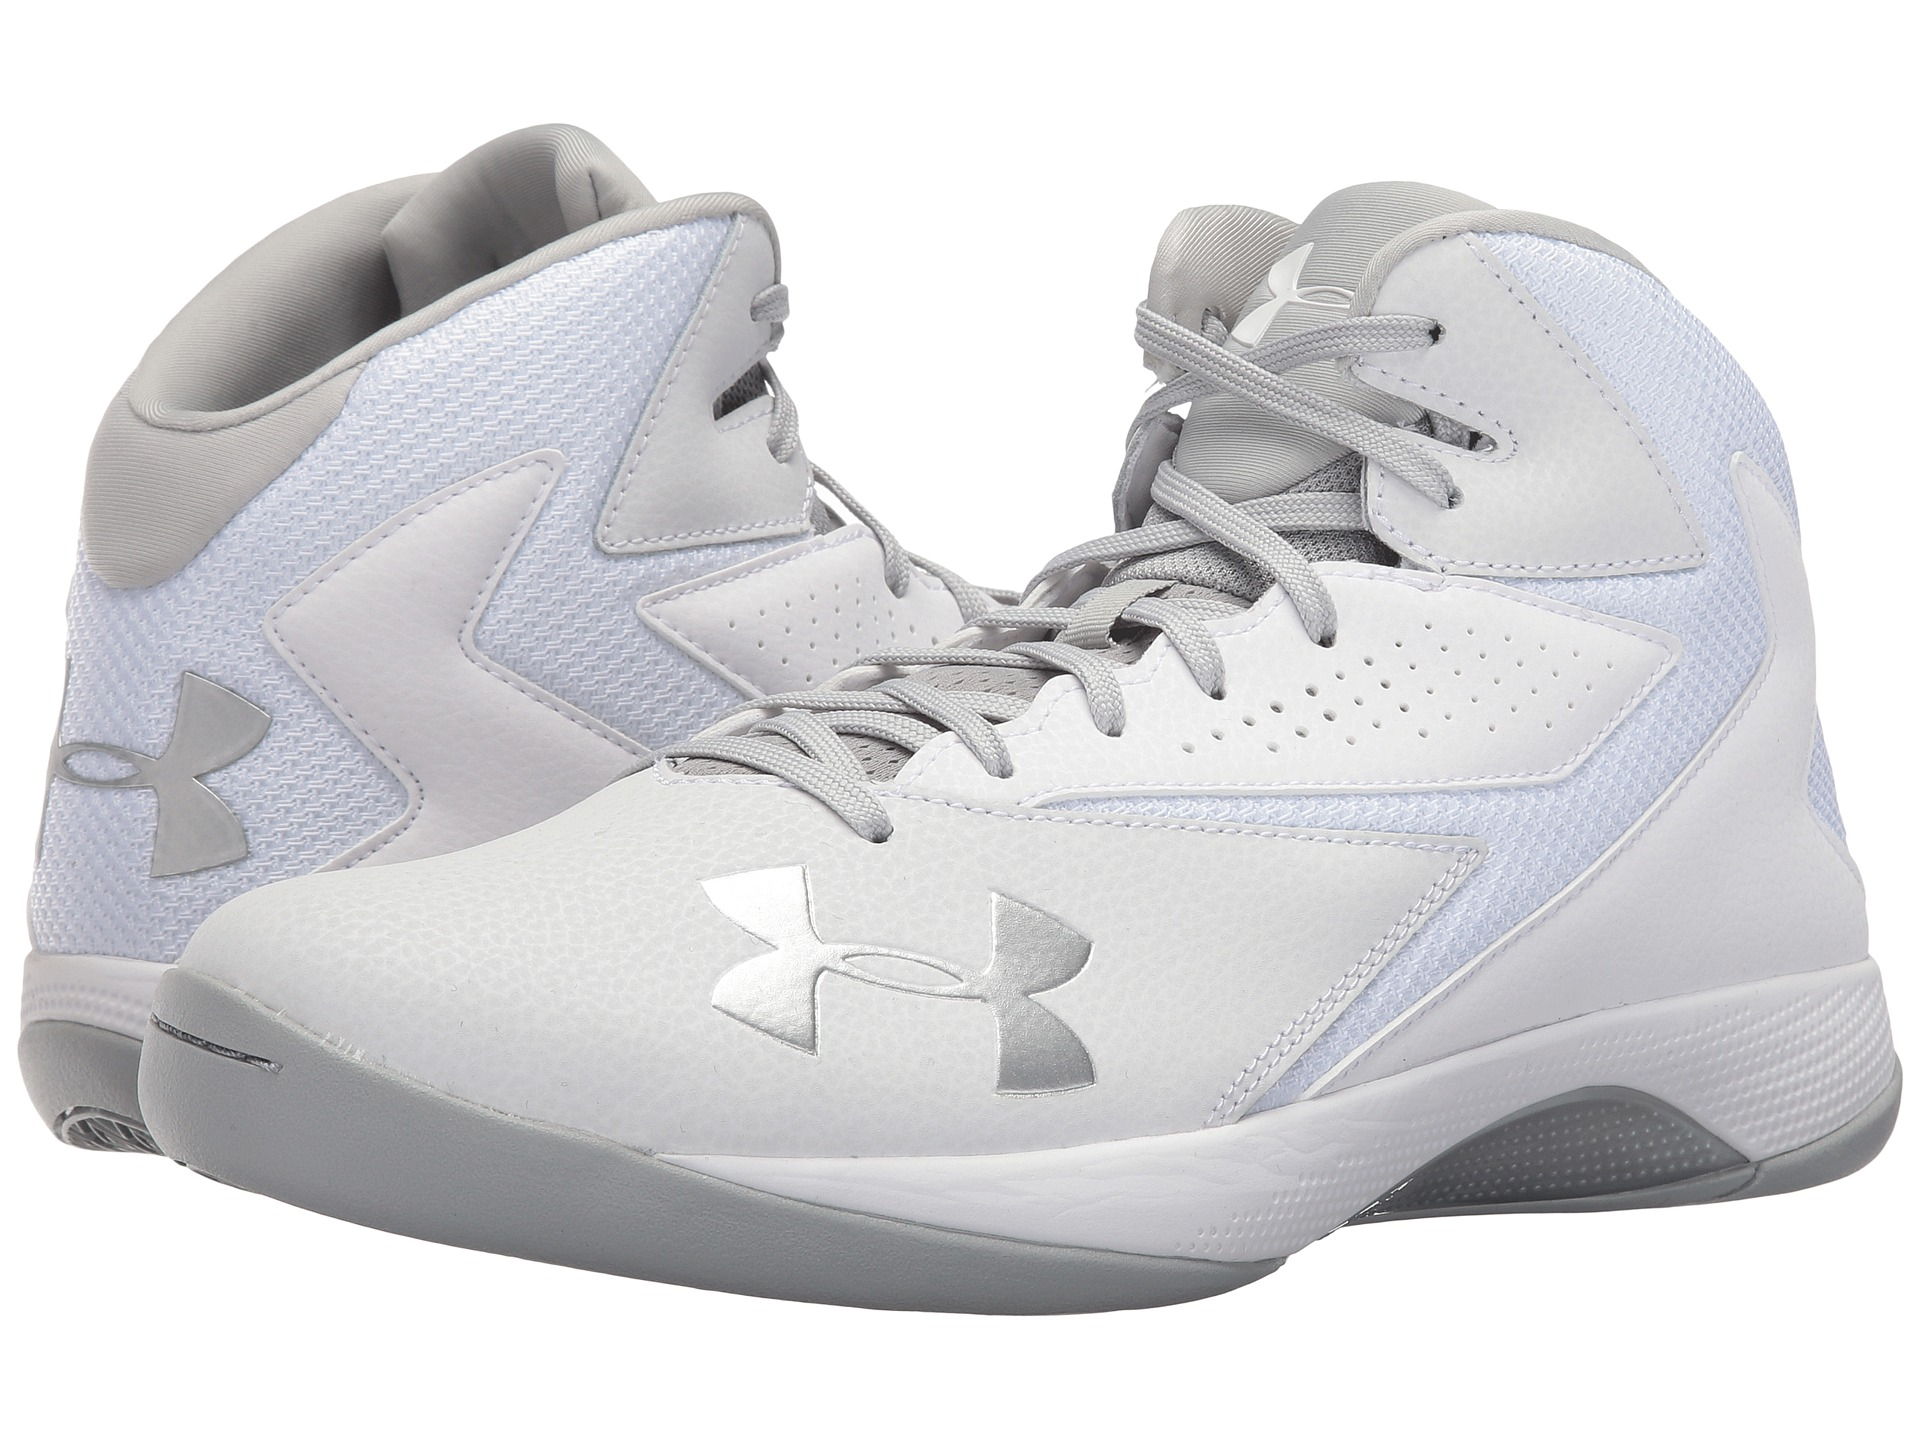 Under Armor Basketball Shoes For Kids